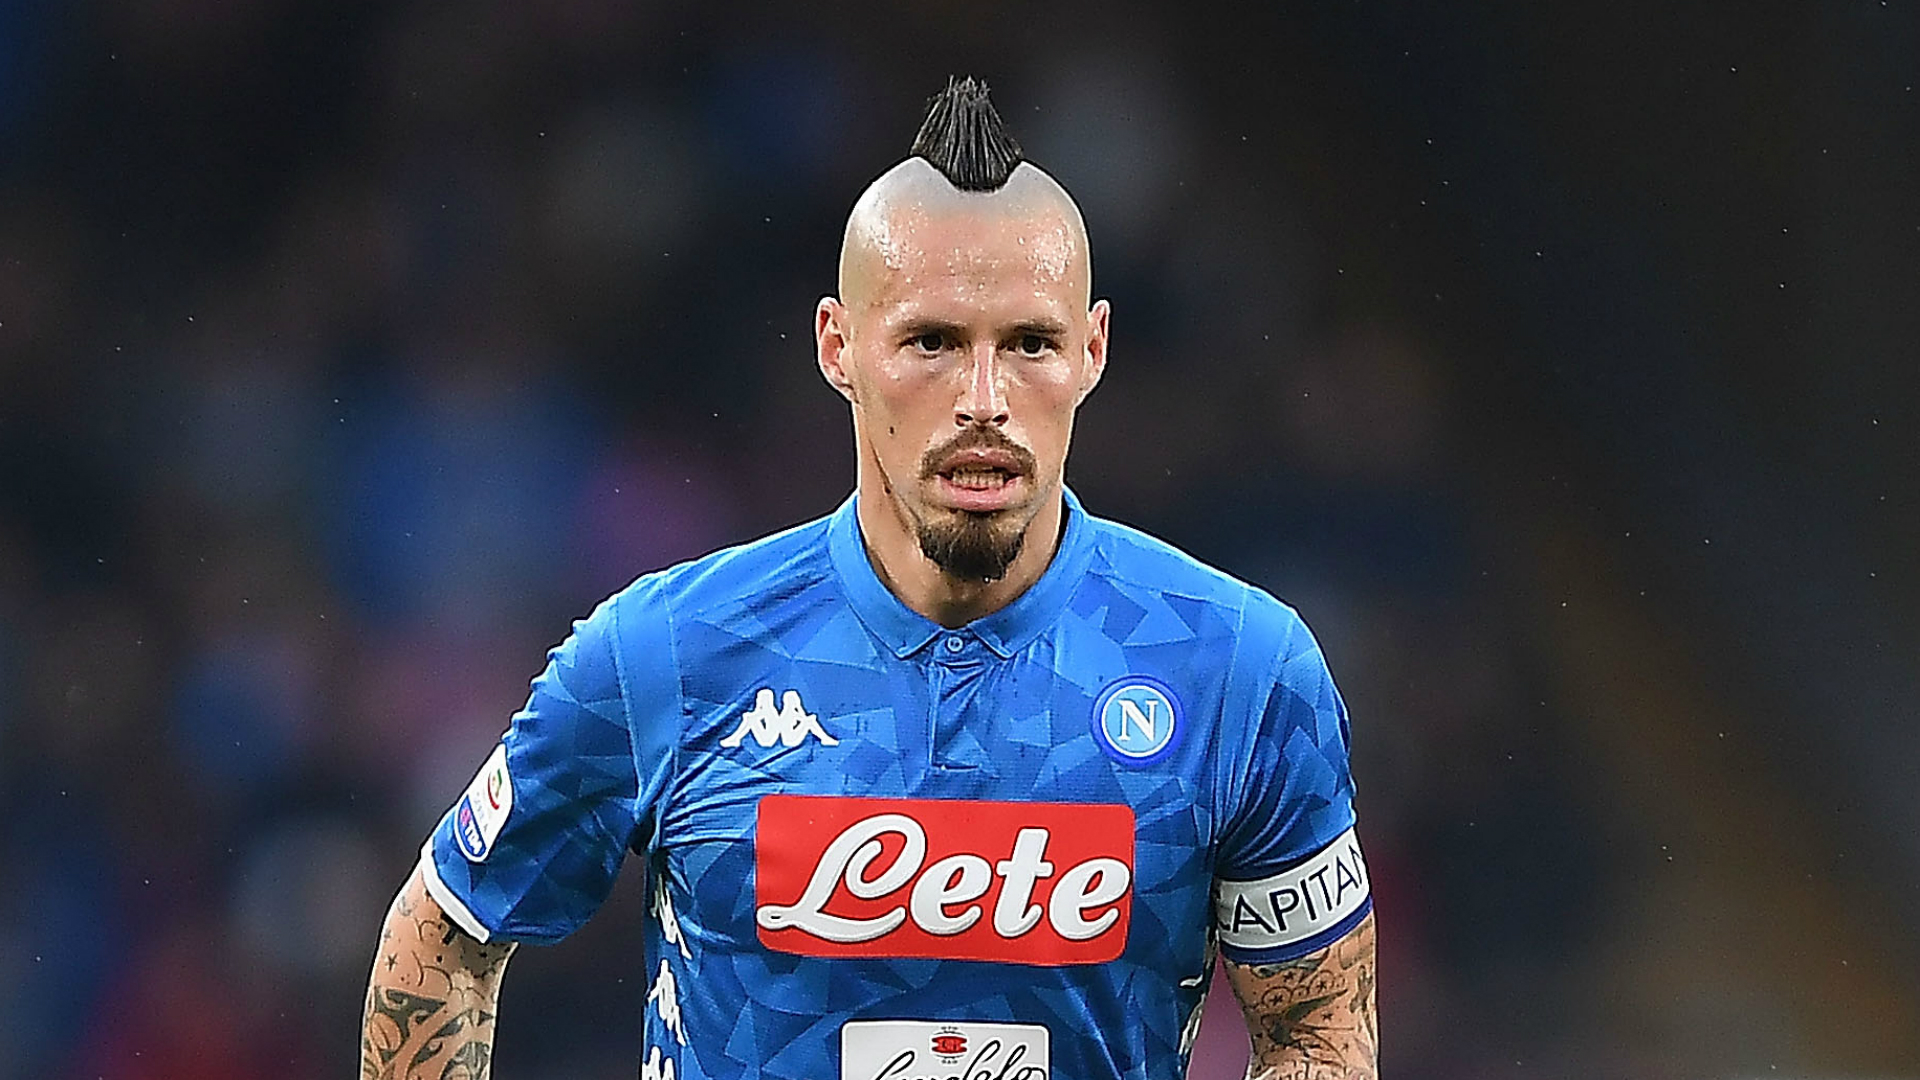 Transfer news: Roma switch ruled out for ex-Napoli ace Marek Hamsik |  Goal.com